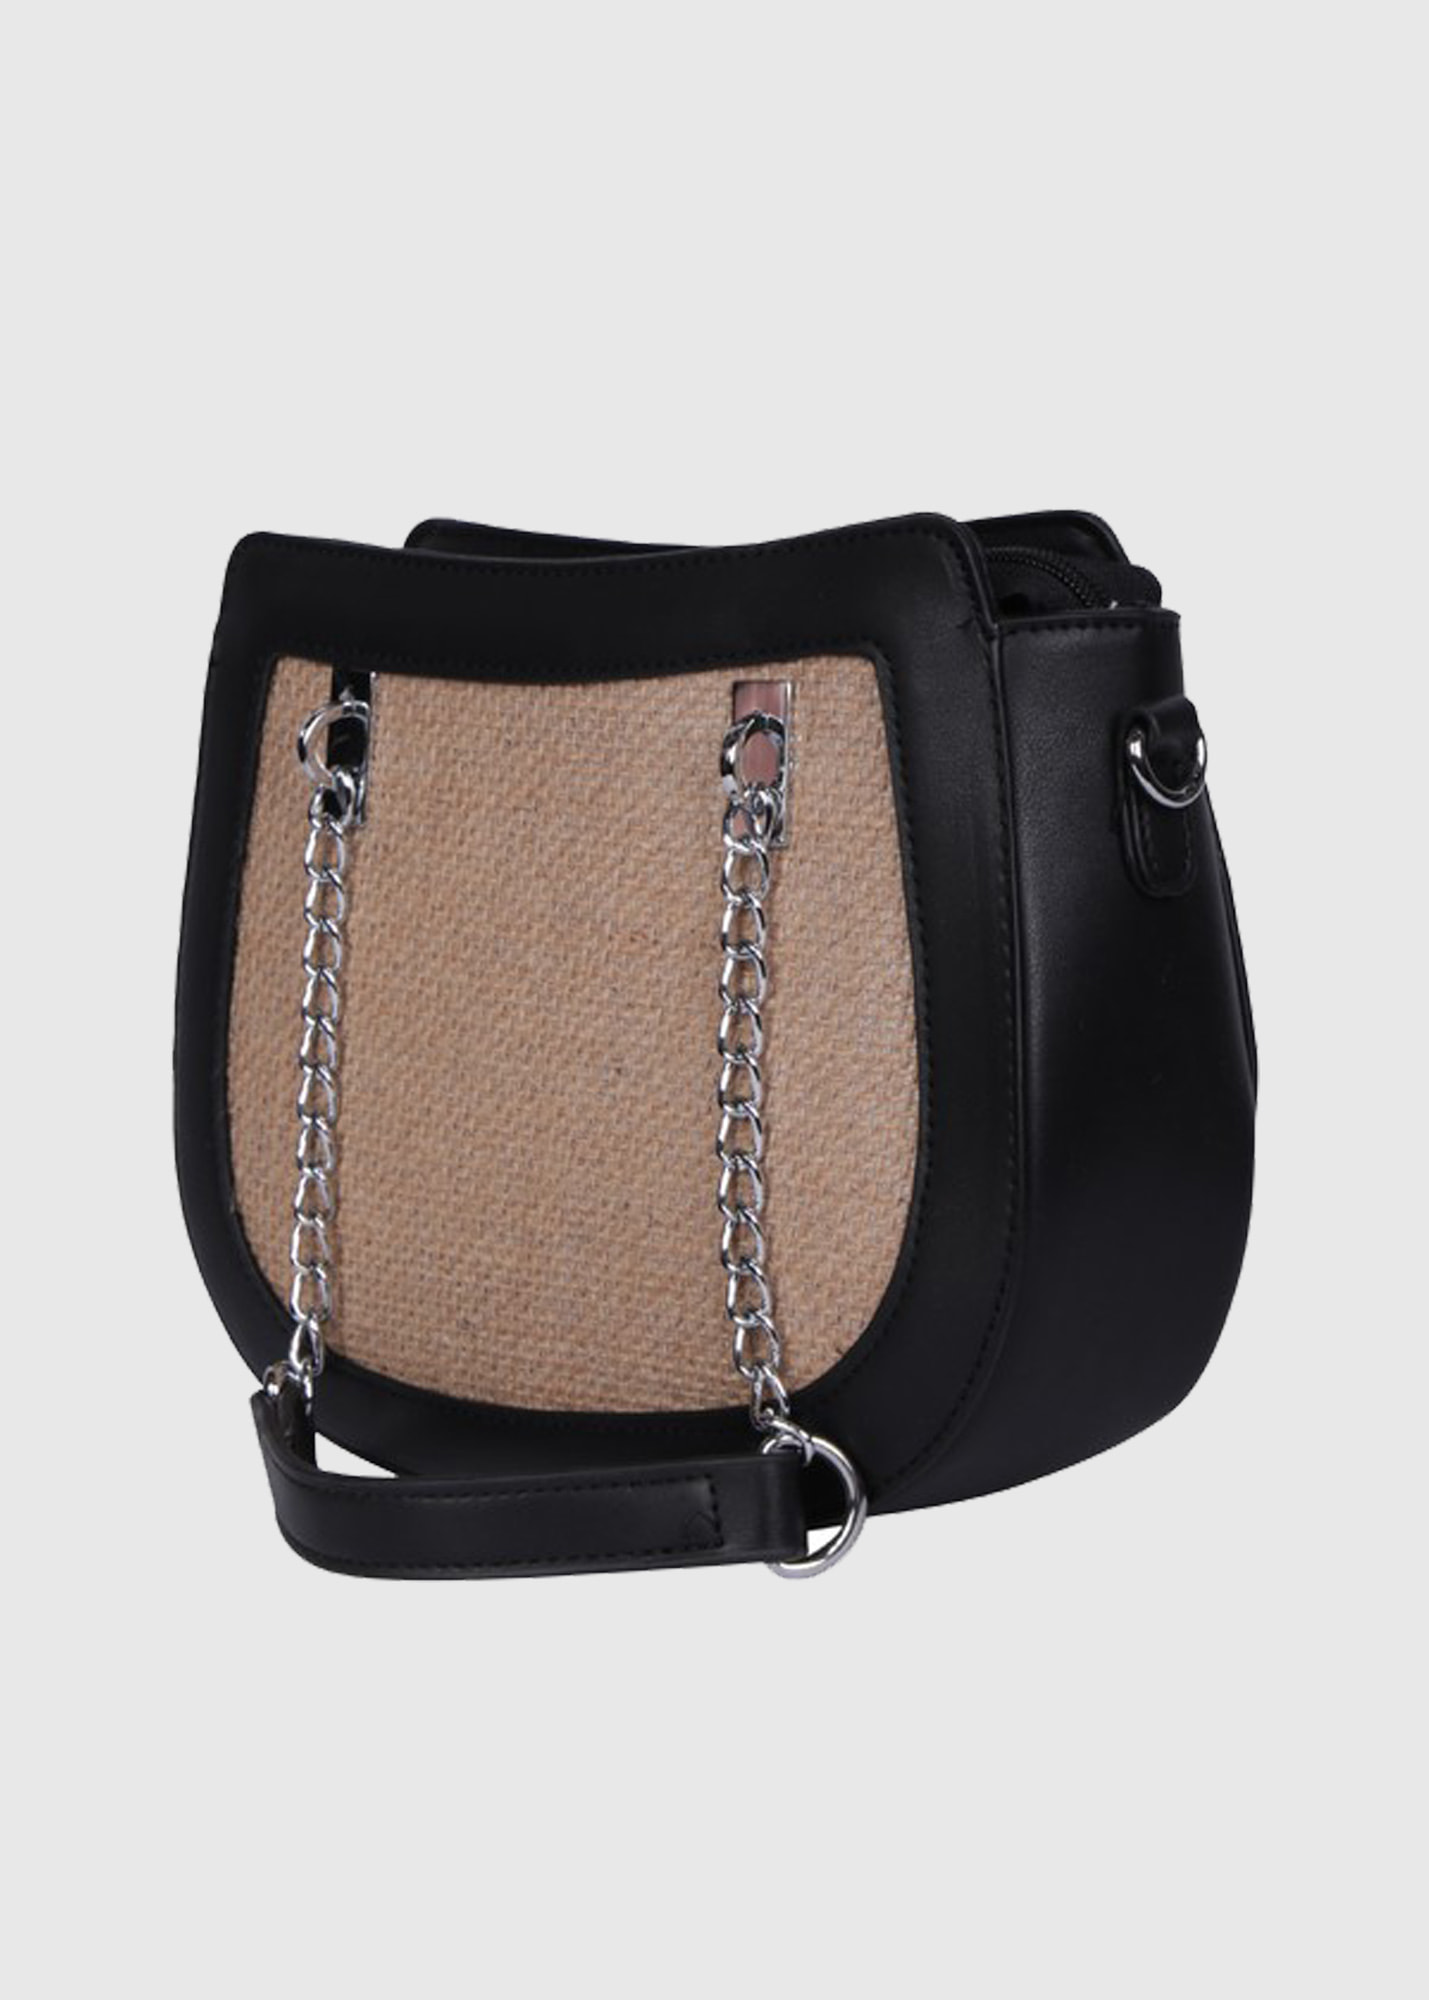 Photo №2 Giacinta black bag with chain strap